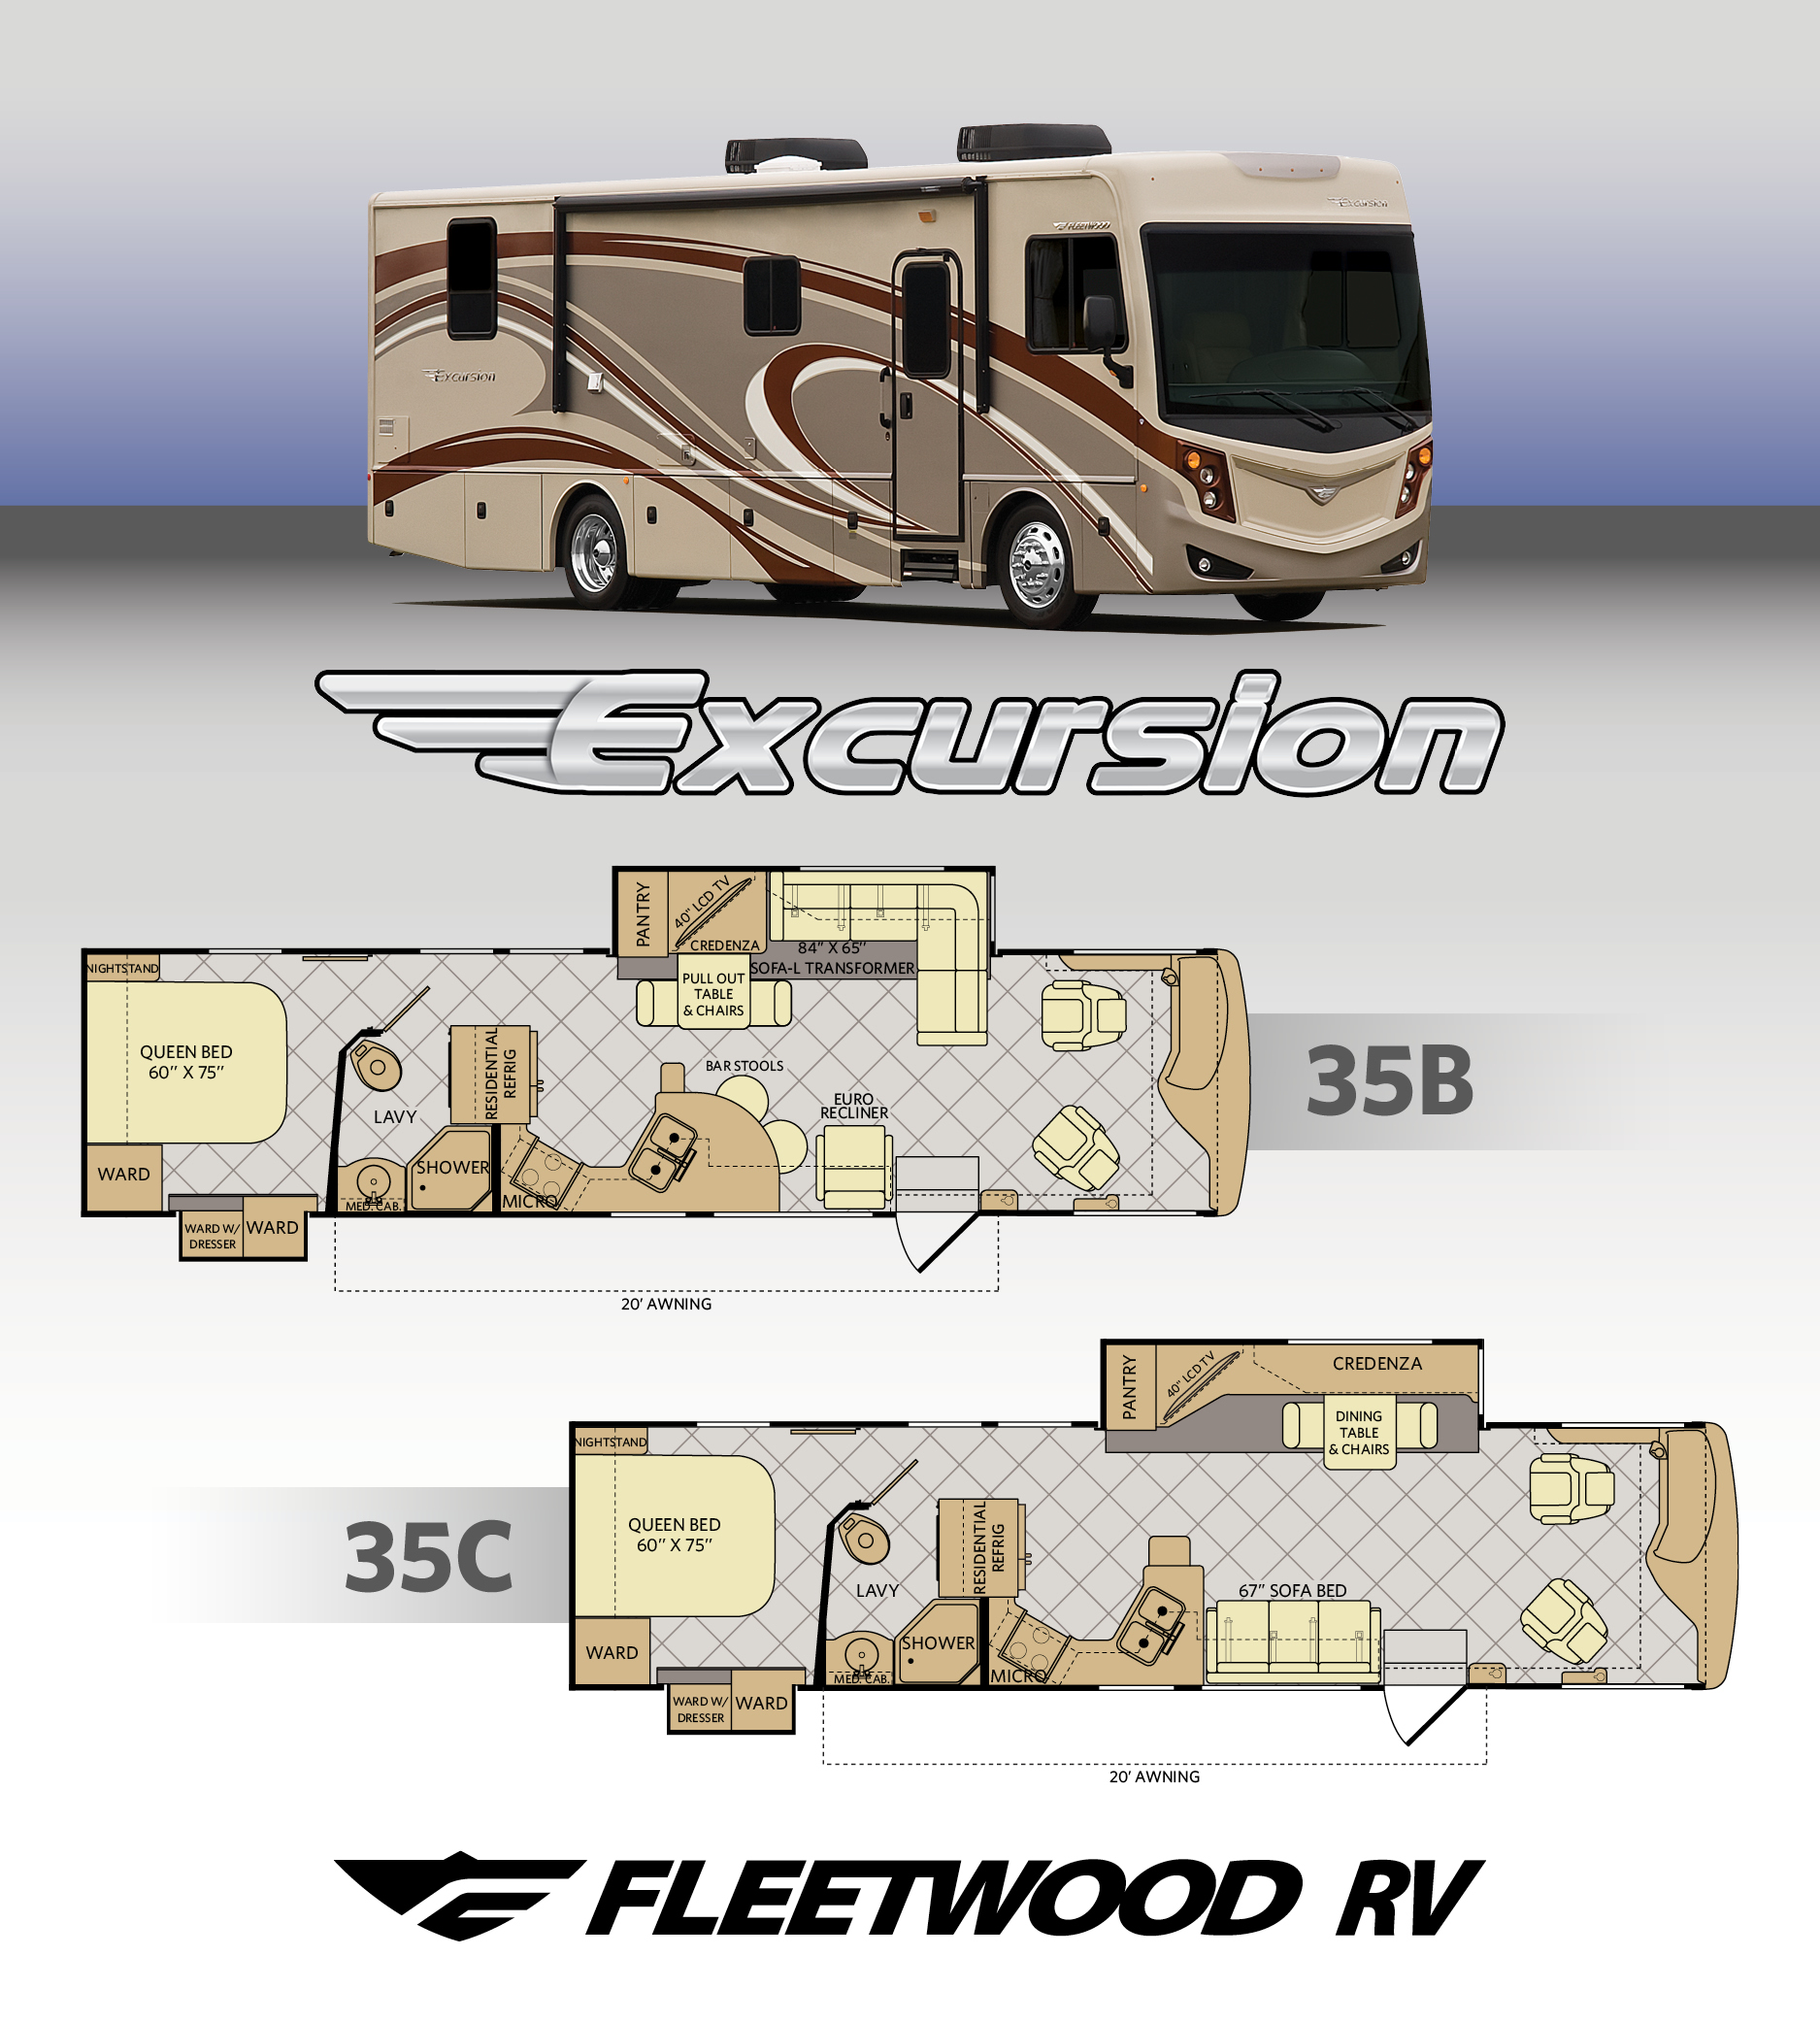 Fleetwood RV expands already new Excursion line up